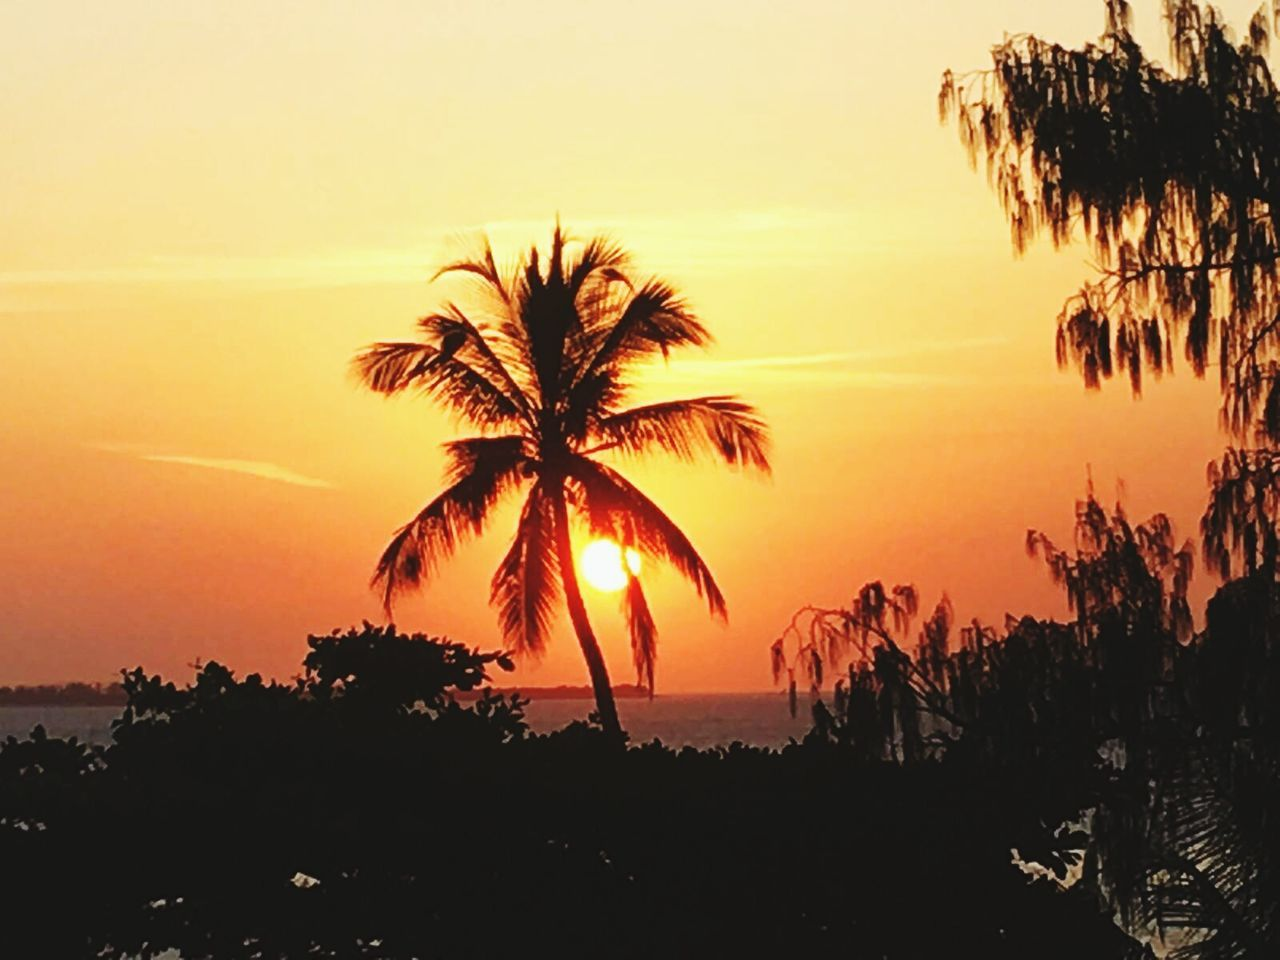 sunset, silhouette, palm tree, tree, beauty in nature, scenics, tranquil scene, nature, orange color, tranquility, sky, sun, growth, outdoors, landscape, no people, sea